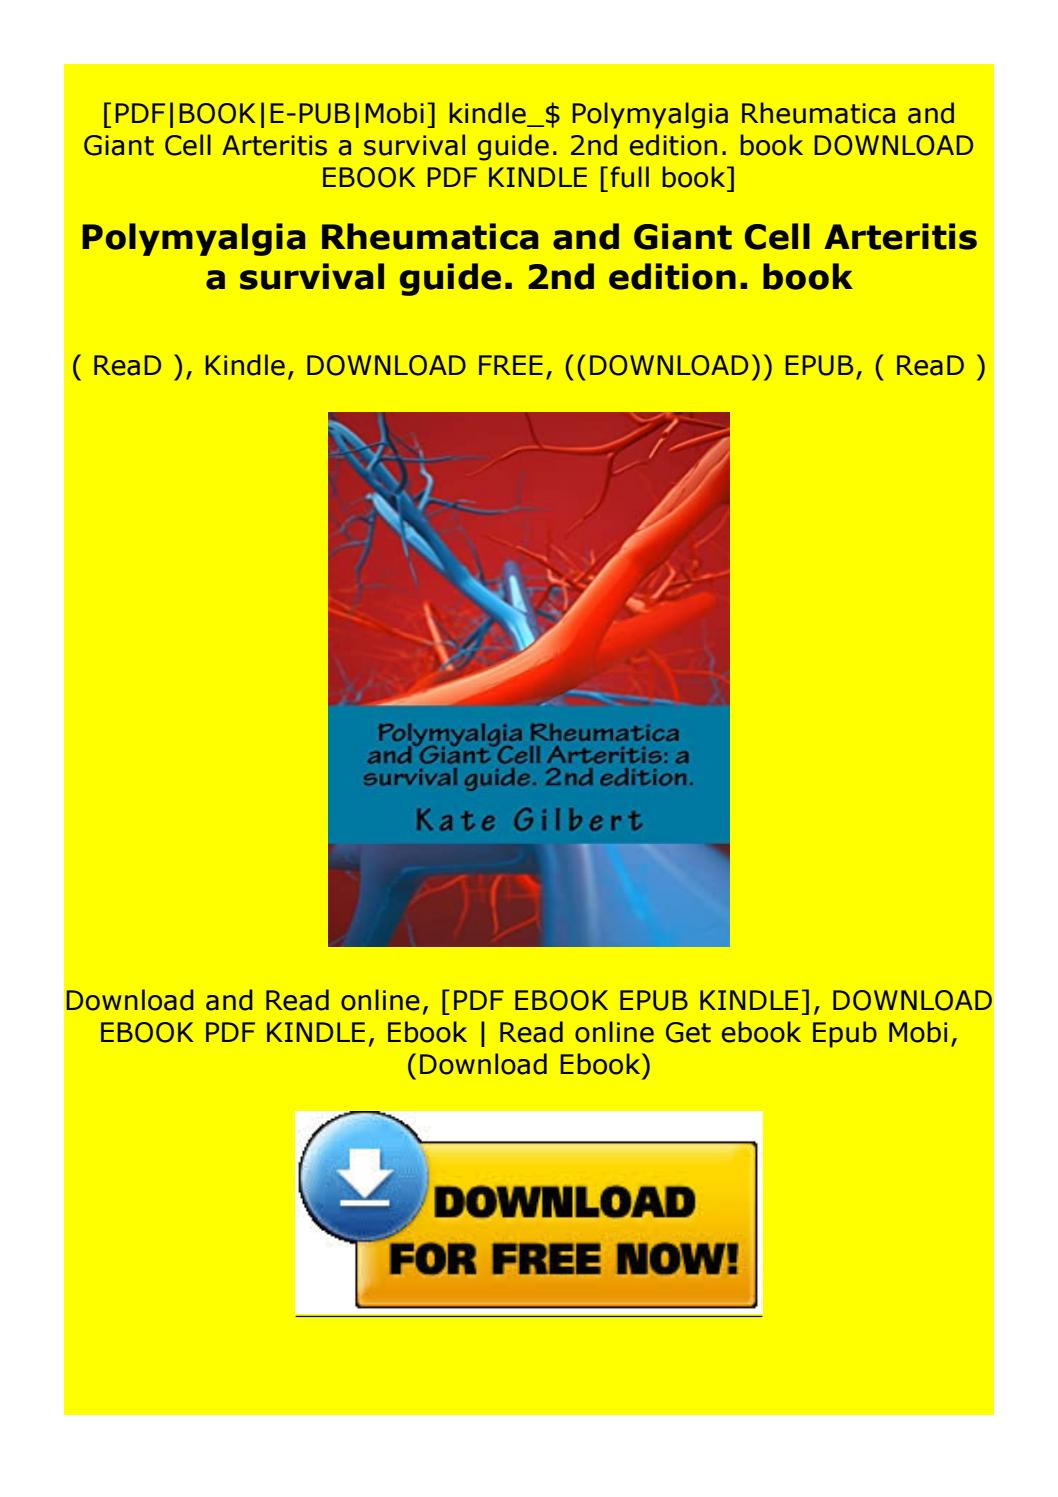 Paperback Polymyalgia Rheumatica And Giant Cell Arteritis A Survival Guide 2nd Edition Book By Gf5vrtyguhij Issuu